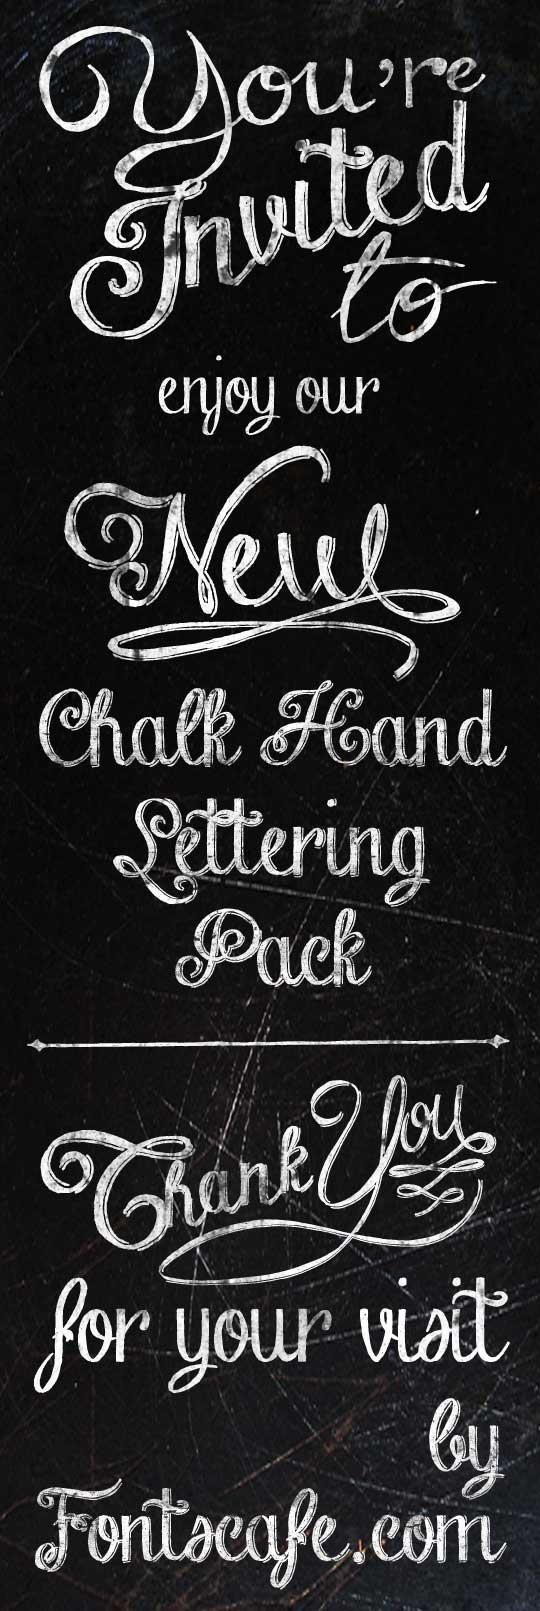 chalk-hand-lettering-shaded dem font by fontscafe